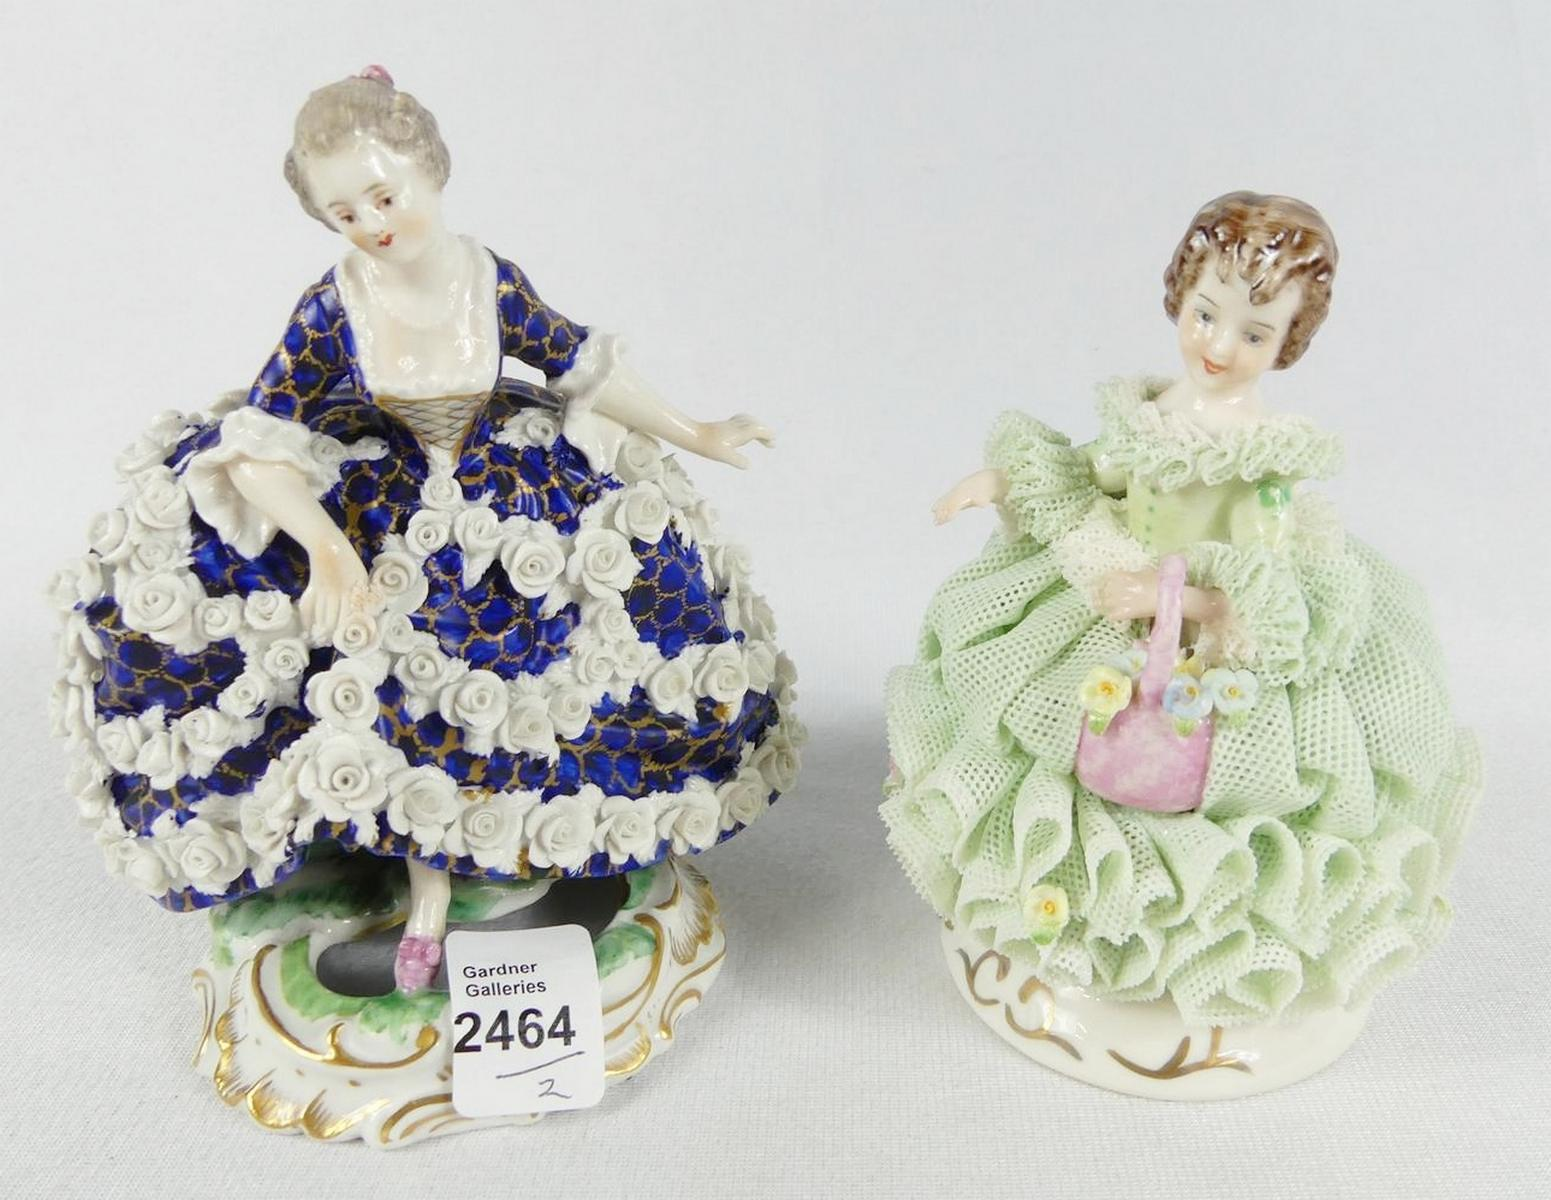 TWO LACY PORCELAIN FIGURINES